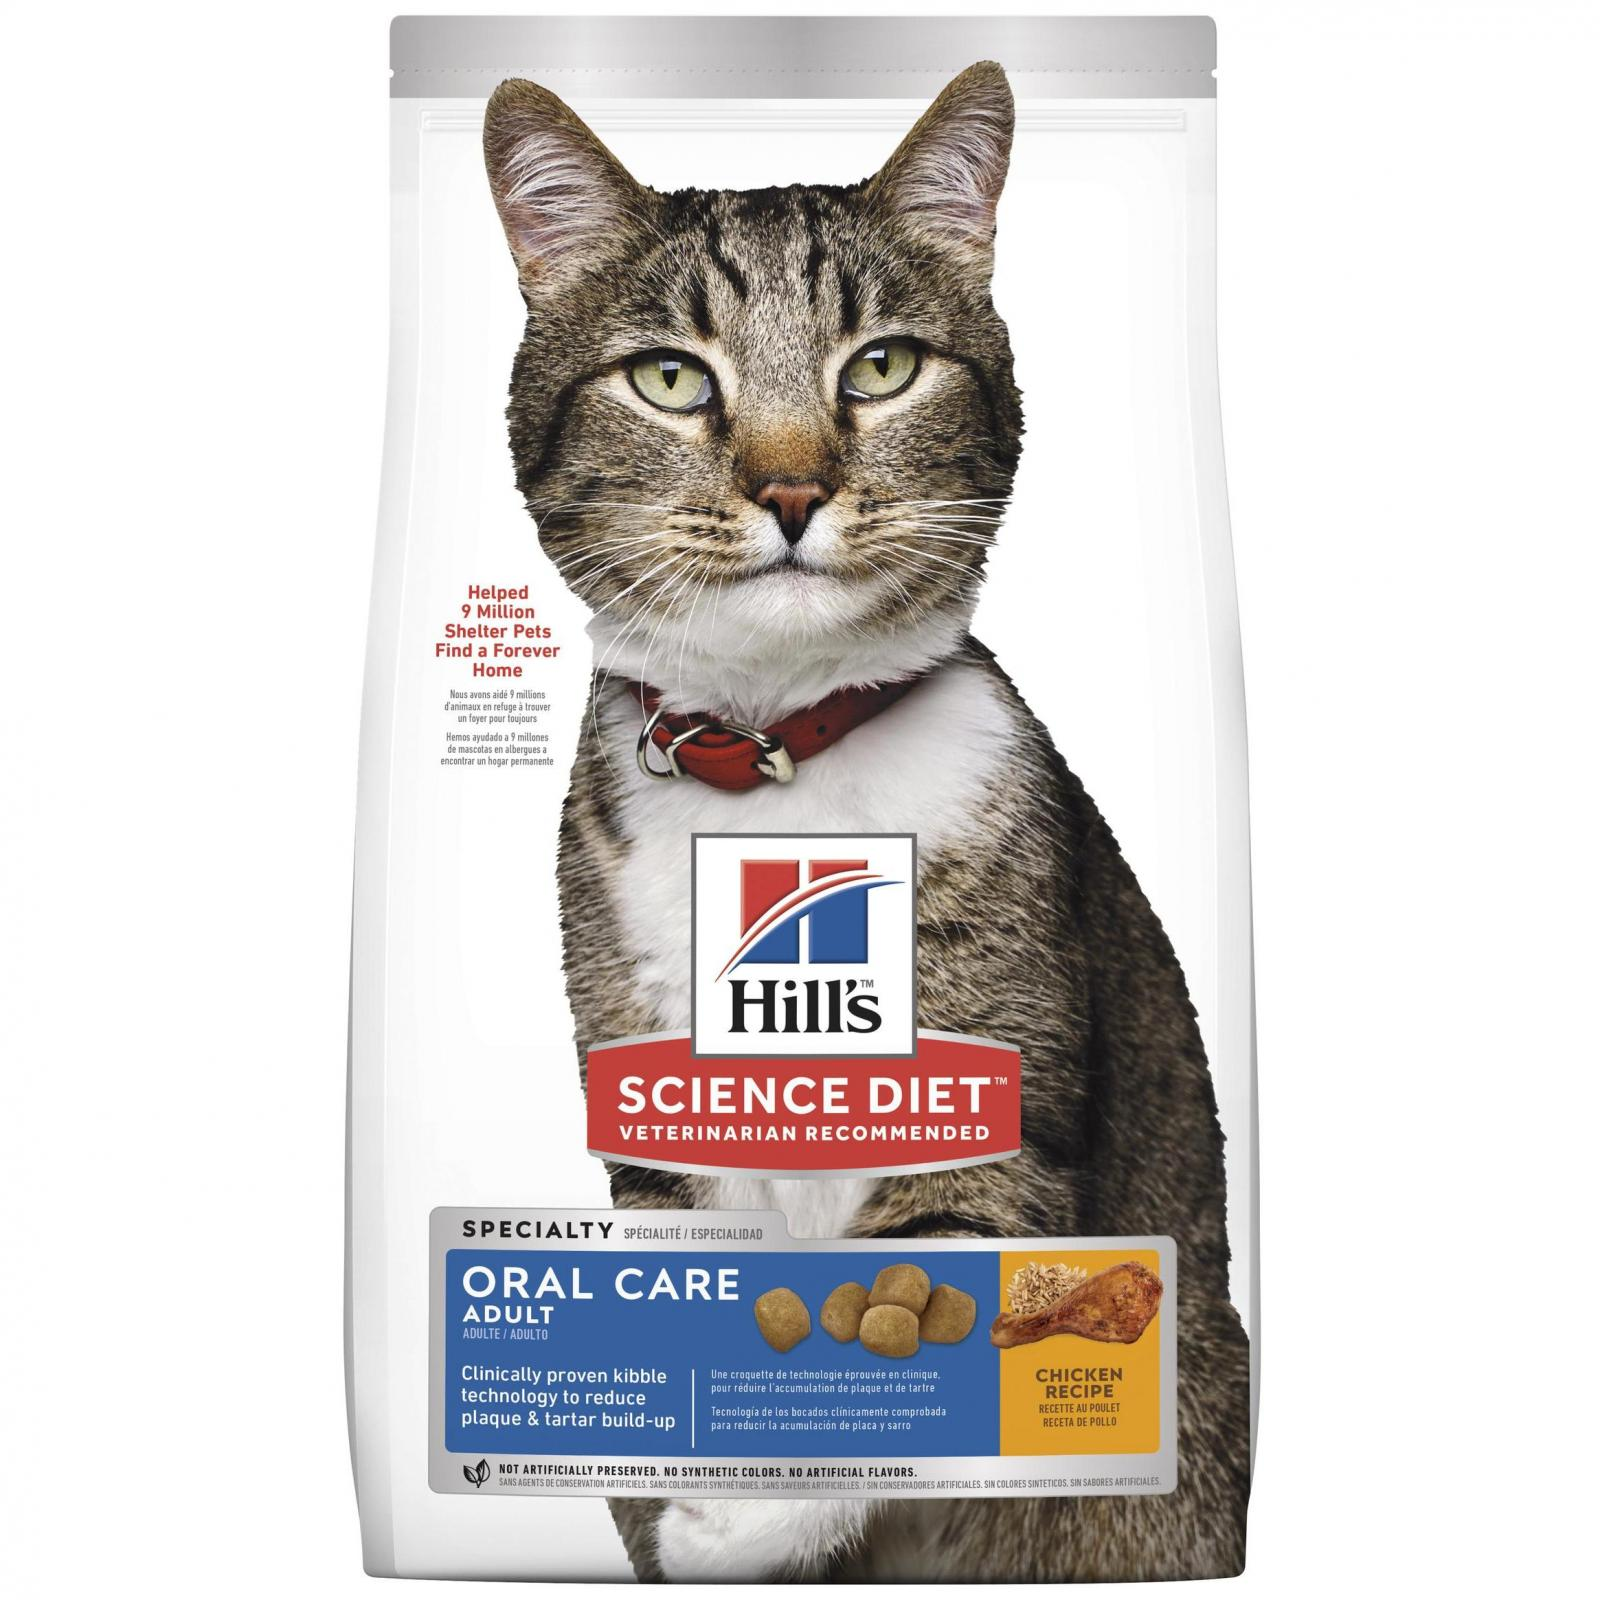 Hill's Hill's Science Diet Cat Oral C are